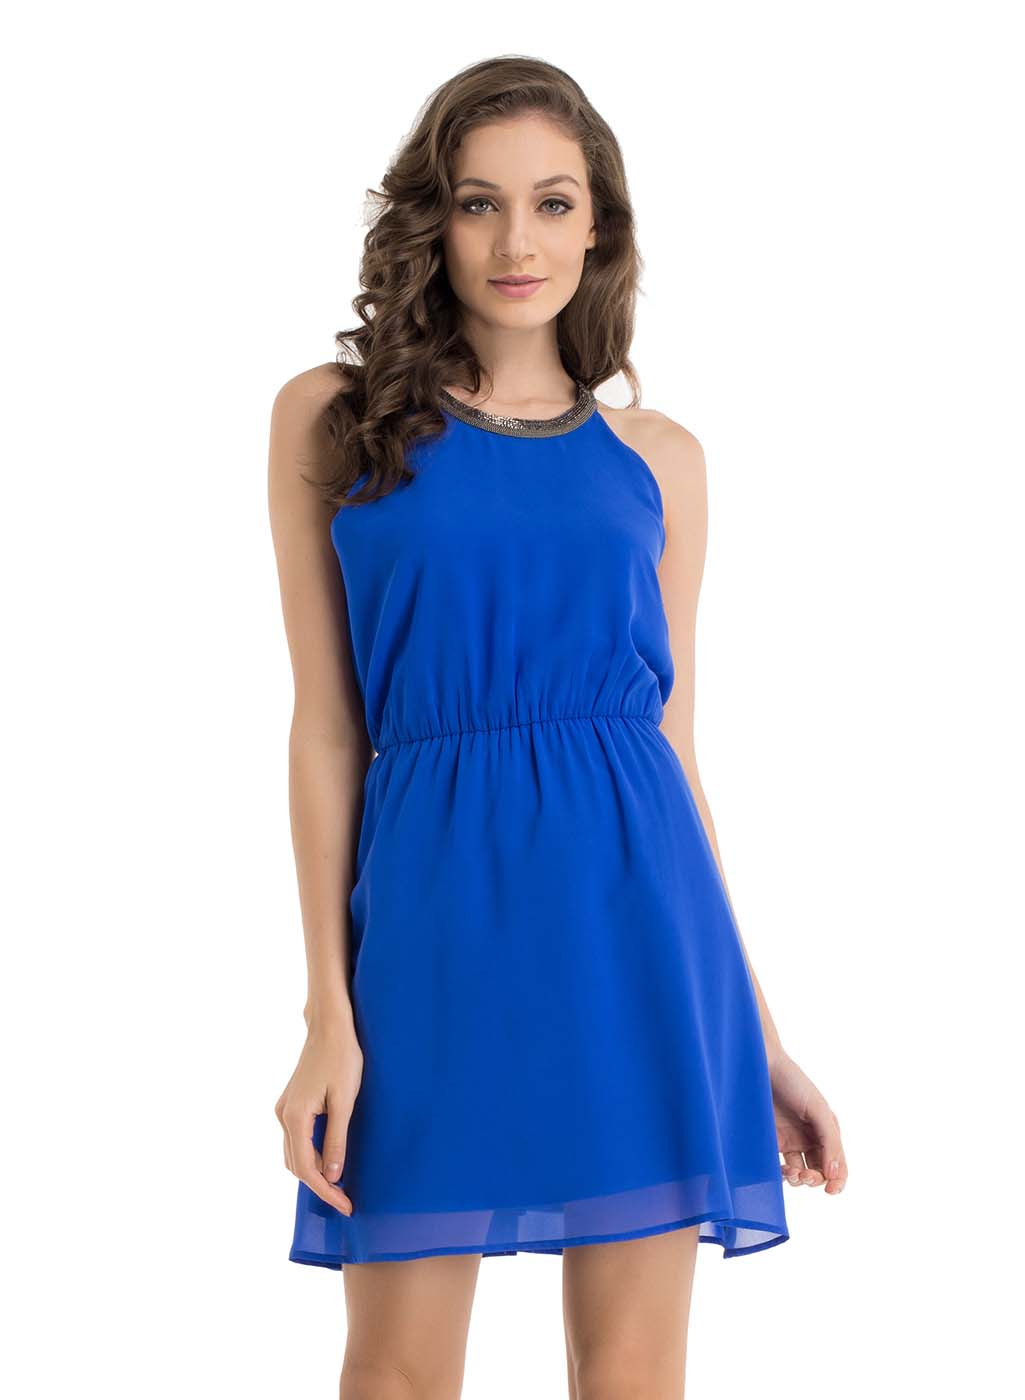 Bella Halter Neck Dress